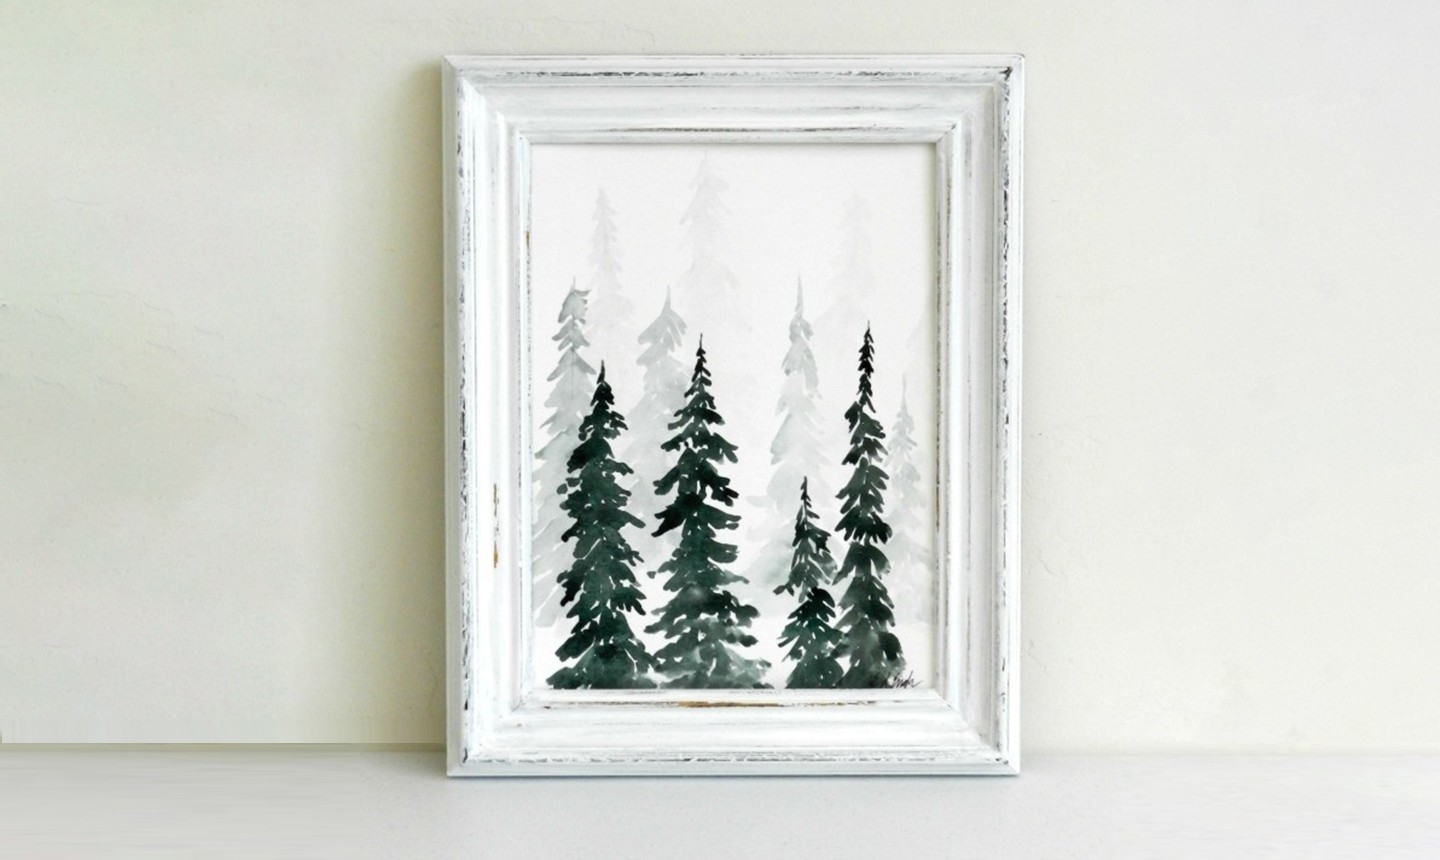 watercolor pine trees tutorial how to paint a wintery forestscape watercolor pine trees tutorial how to